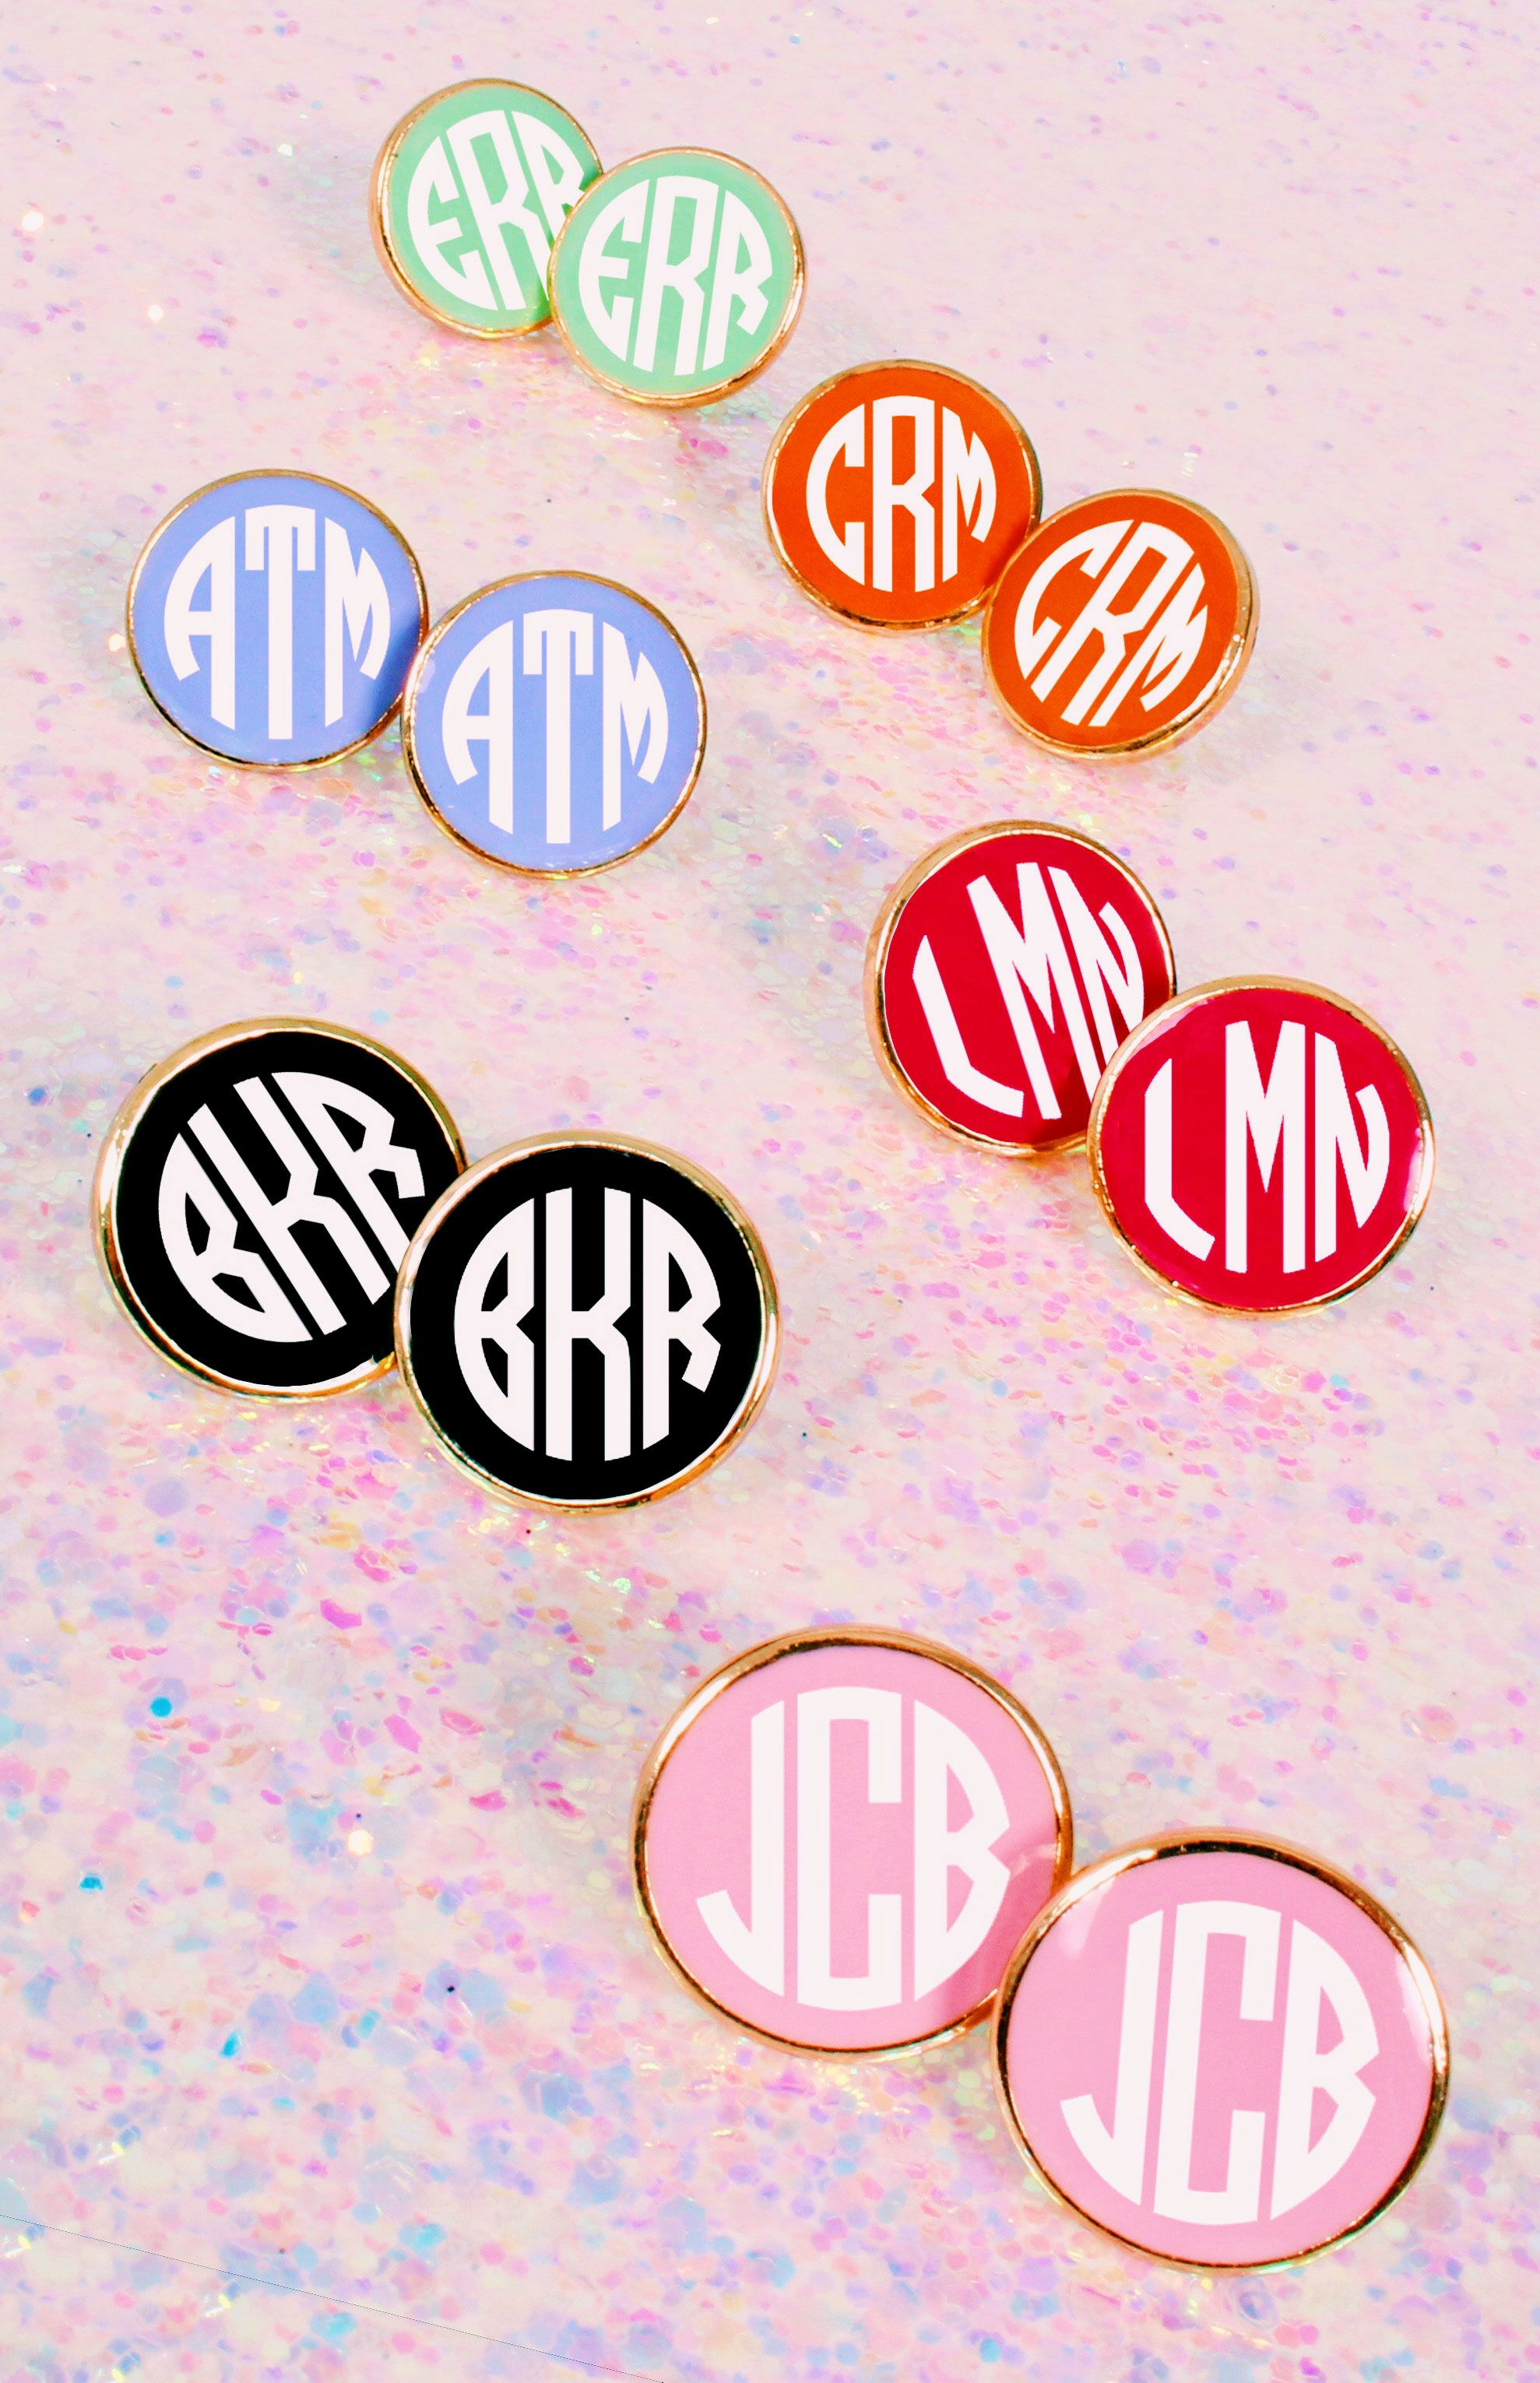 These Sweet Monogrammed Enamel Earrings Come In So Many Colors And Add Fun To Any Outfit Monogrammed Earrings Vinyl Monogram Earrings Monogram Earrings Studs